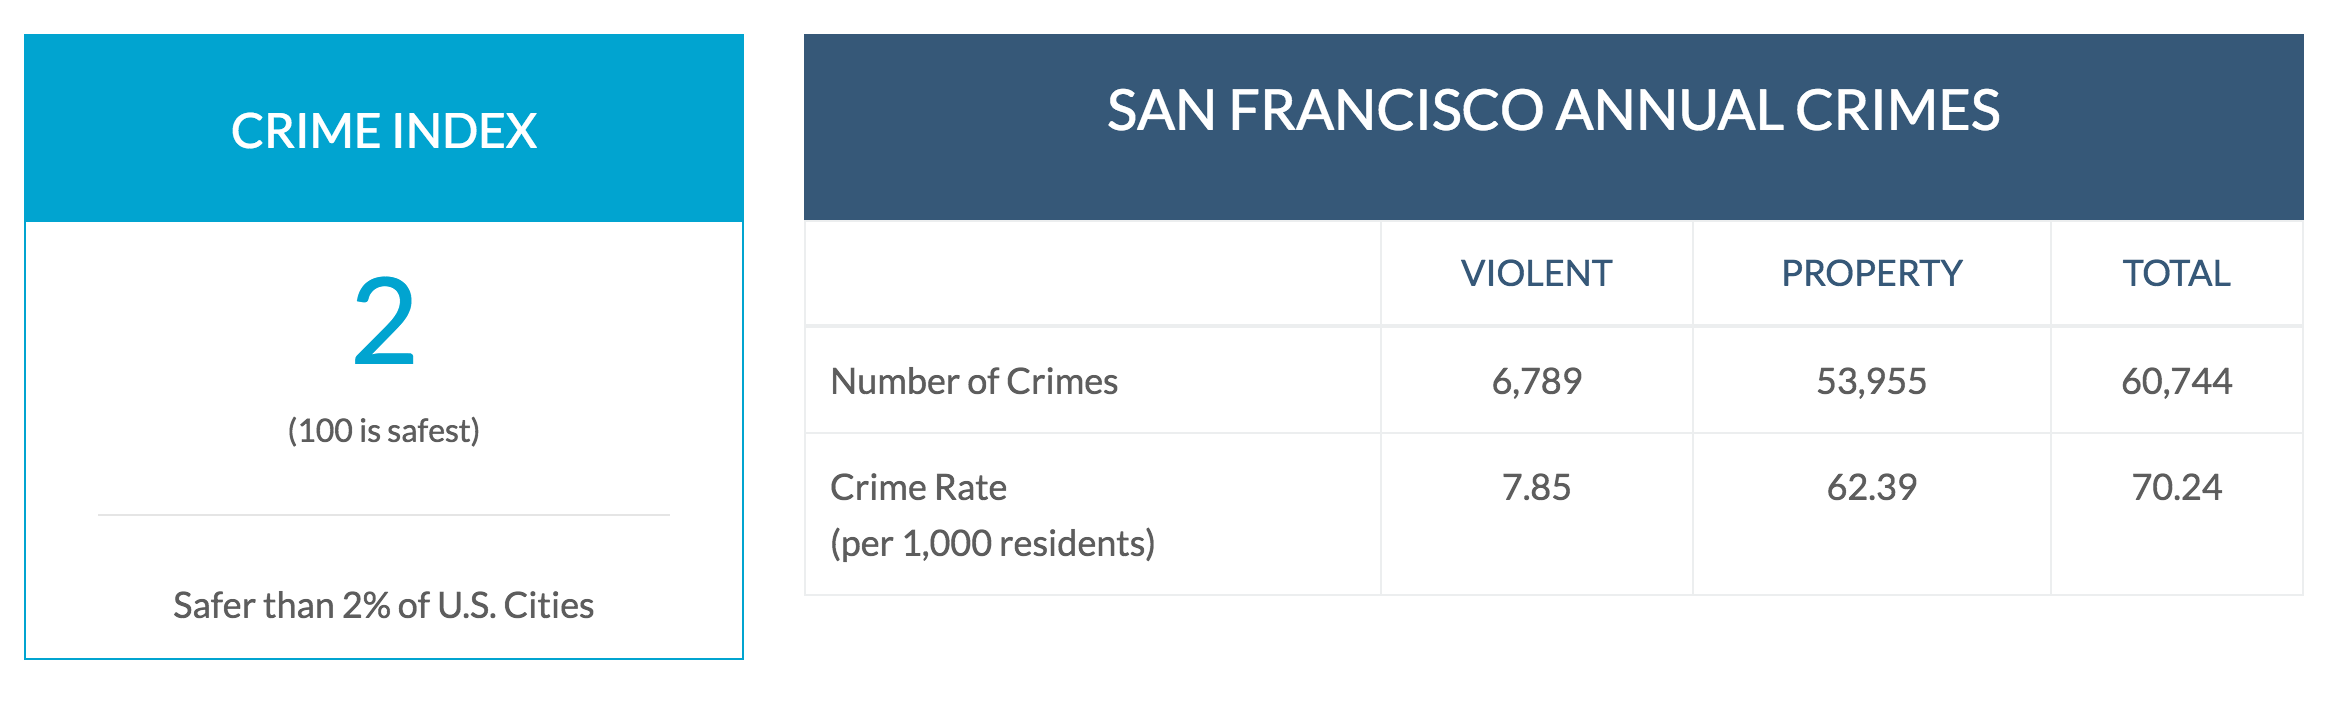 Figure 1: 2017 Crime Index rates Comparing Novato, CA to San Francisco, CA